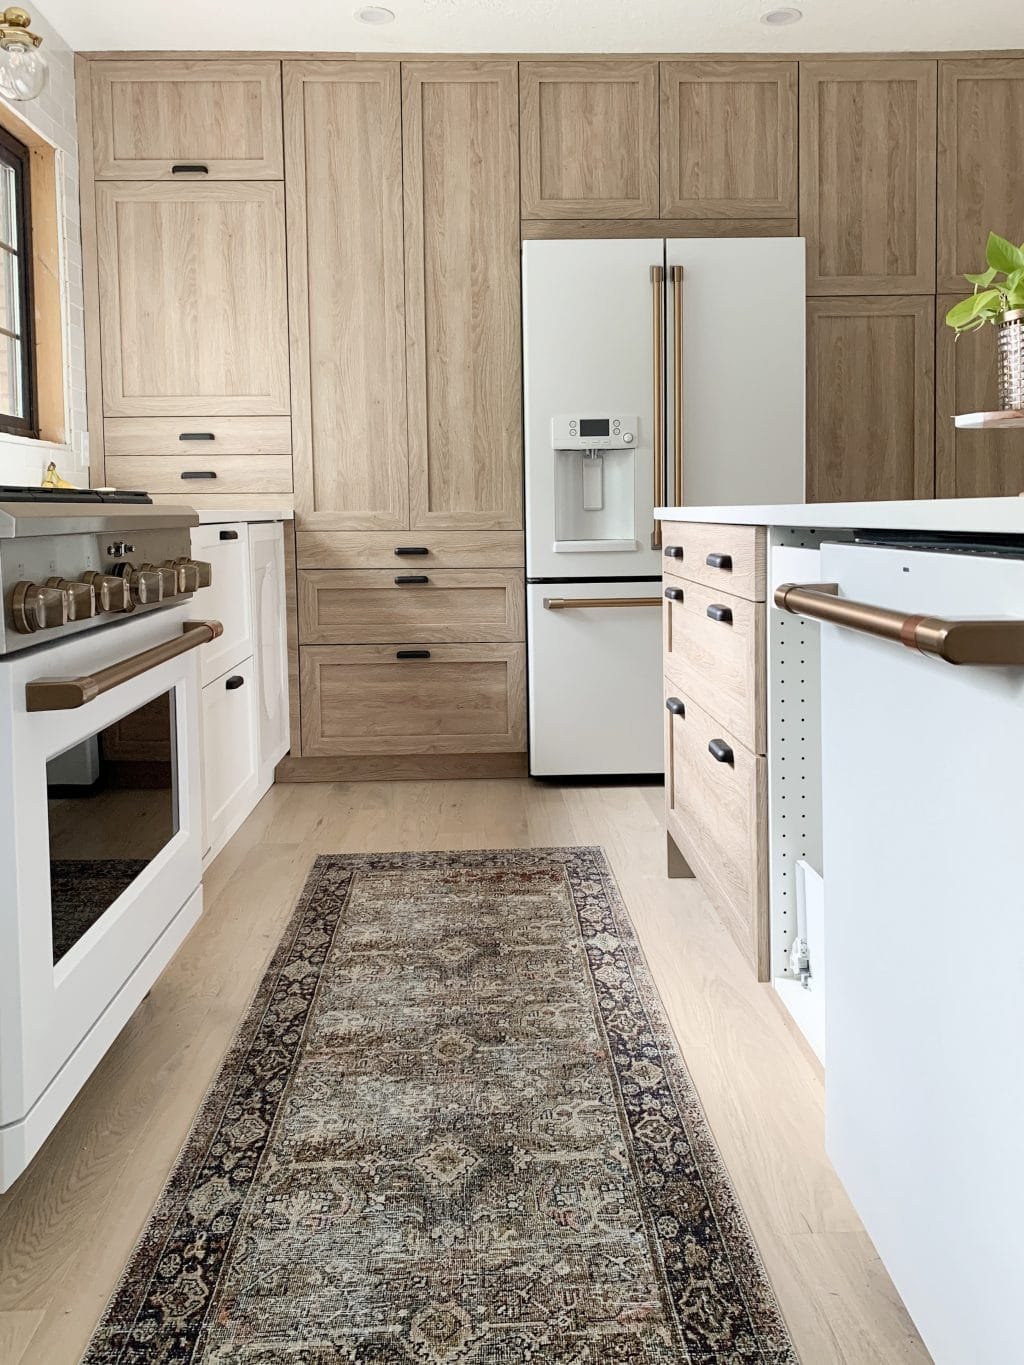 Everything You Need To Know About Using Semihandmade Fronts With Ikea Cabinets And Our Cove Line In The Fullmer Kitchen Chris Loves Julia